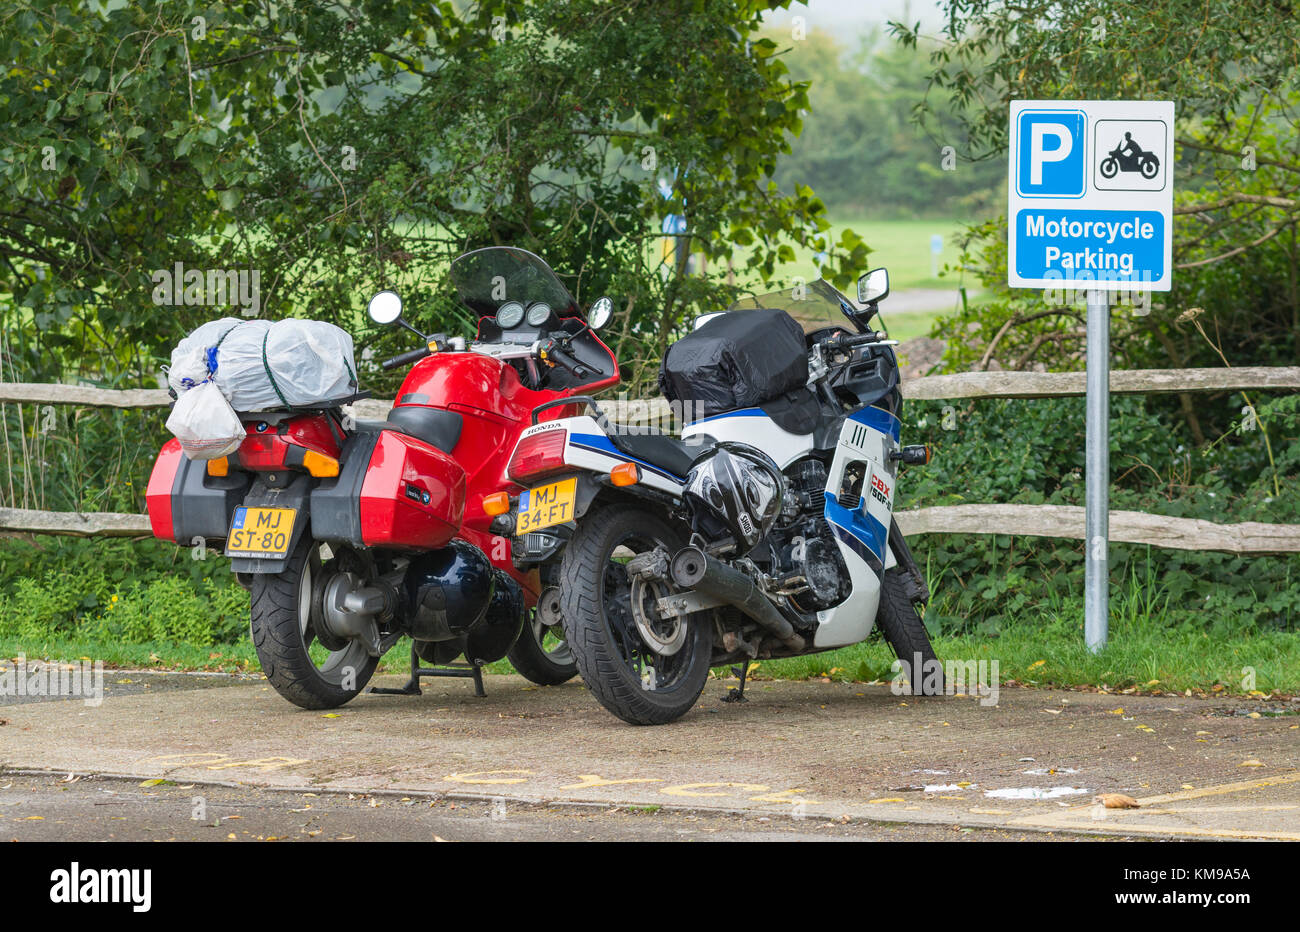 Motorcycle parked in an area of a car park reserved just for motorbikes, in the UK. - Stock Image